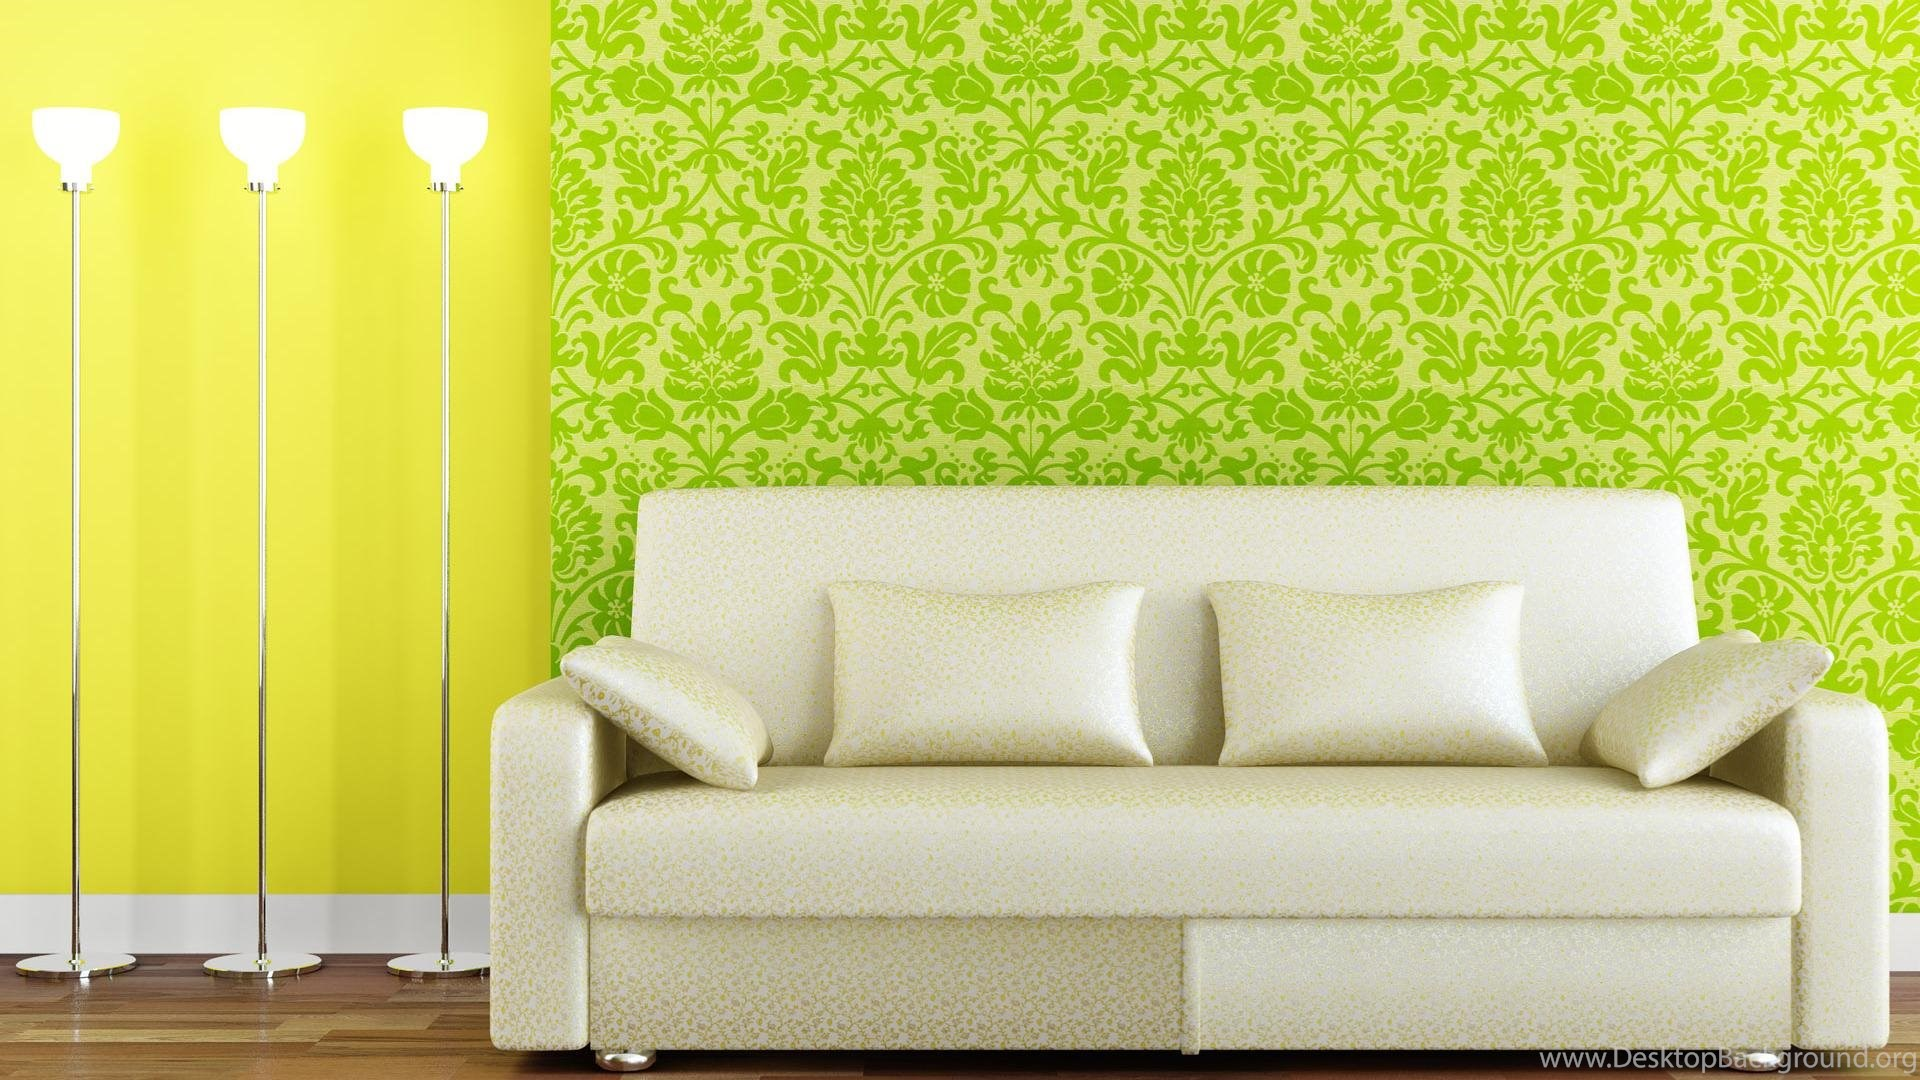 The Excellent Wallpapers Designs For Home Interiors Home Design Desktop Background